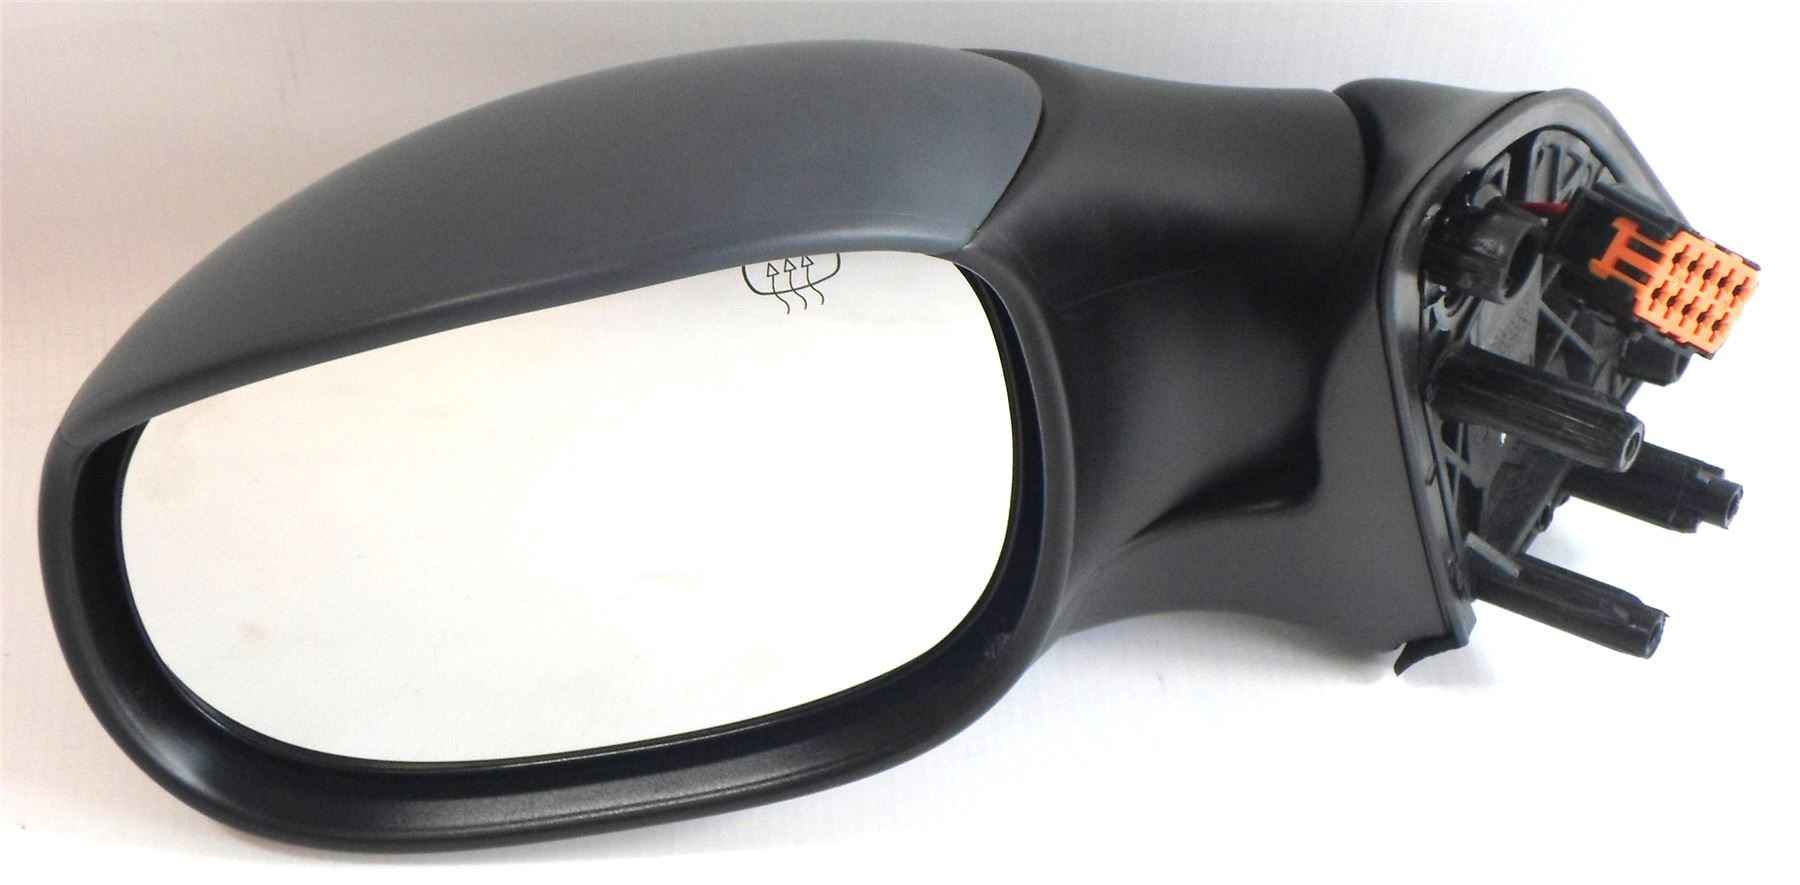 Citroen Xsara Picasso 9/2004-2010 Electric Wing Mirror Primed Passenger Side N/S